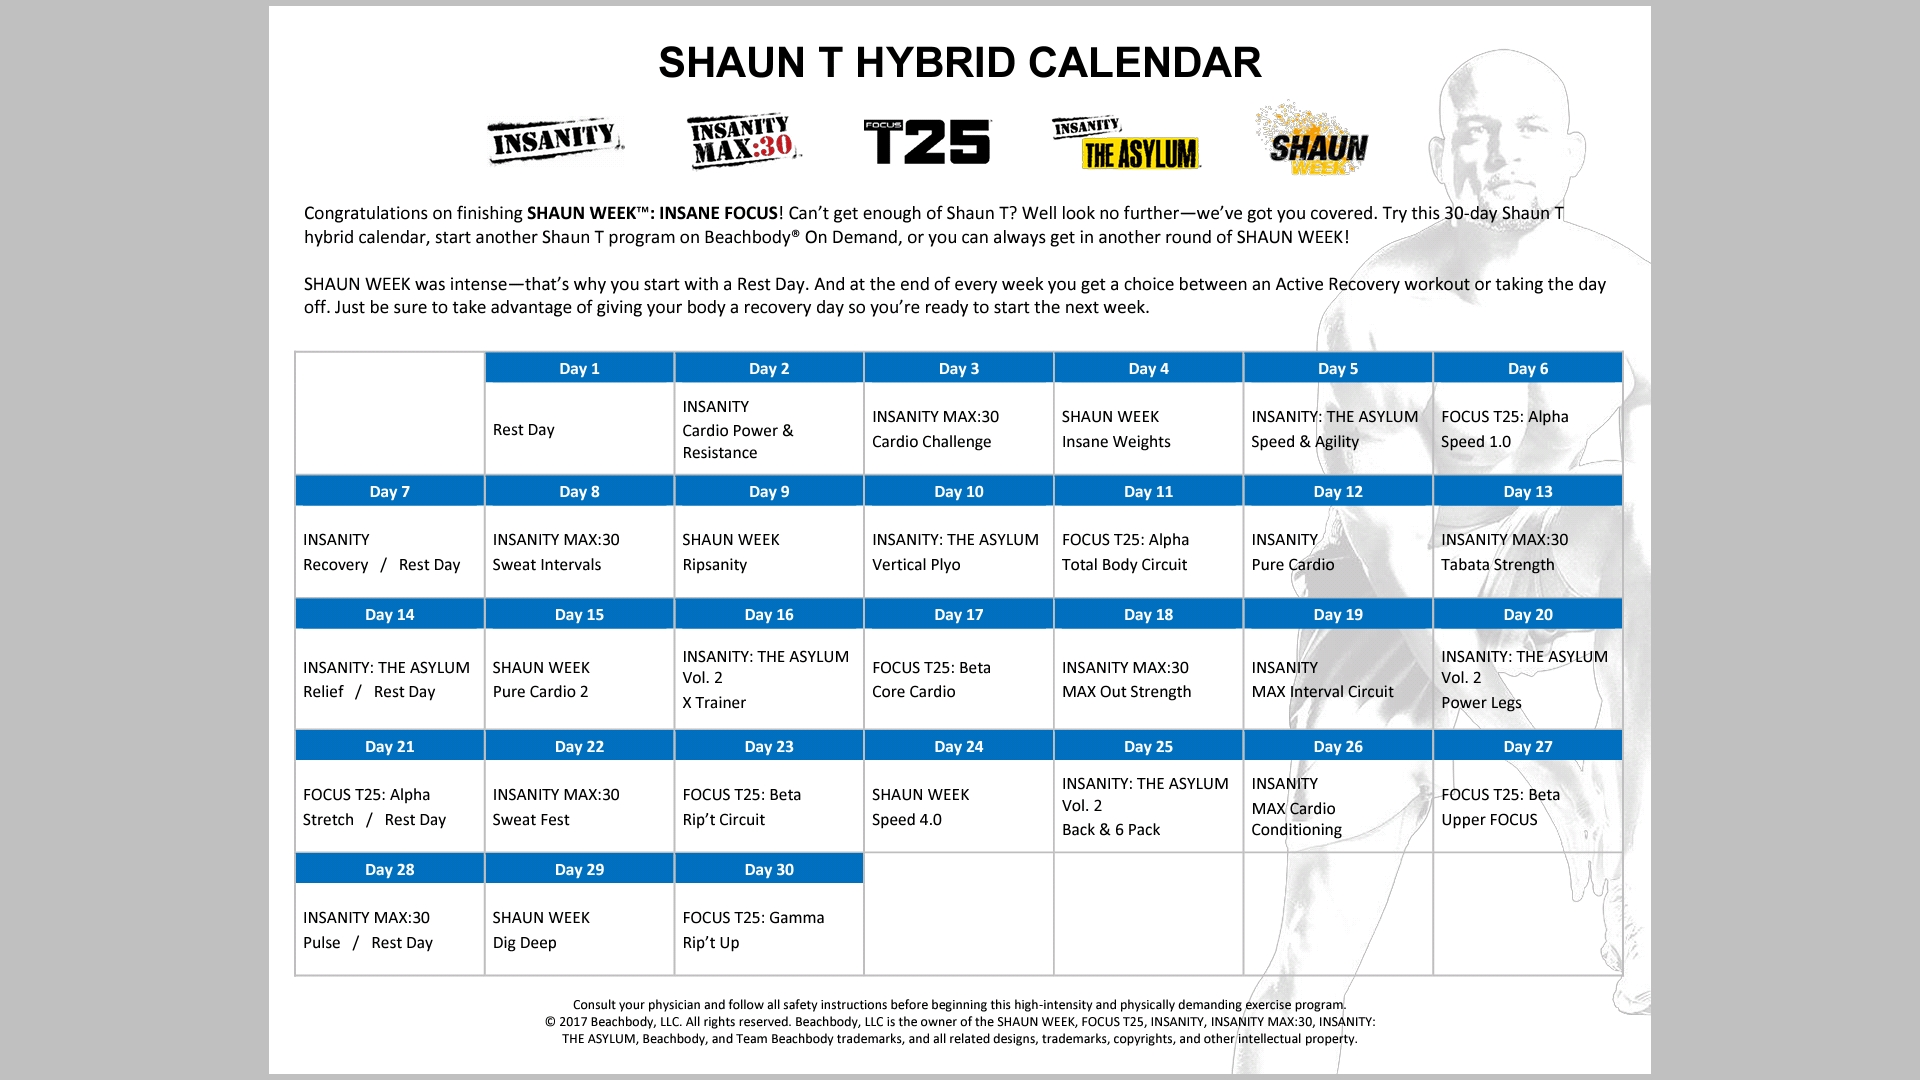 About To Finish Shaun Week. Going To Follow The Hybrid Calendar with Shaun T Hip Hop Abs Schedule